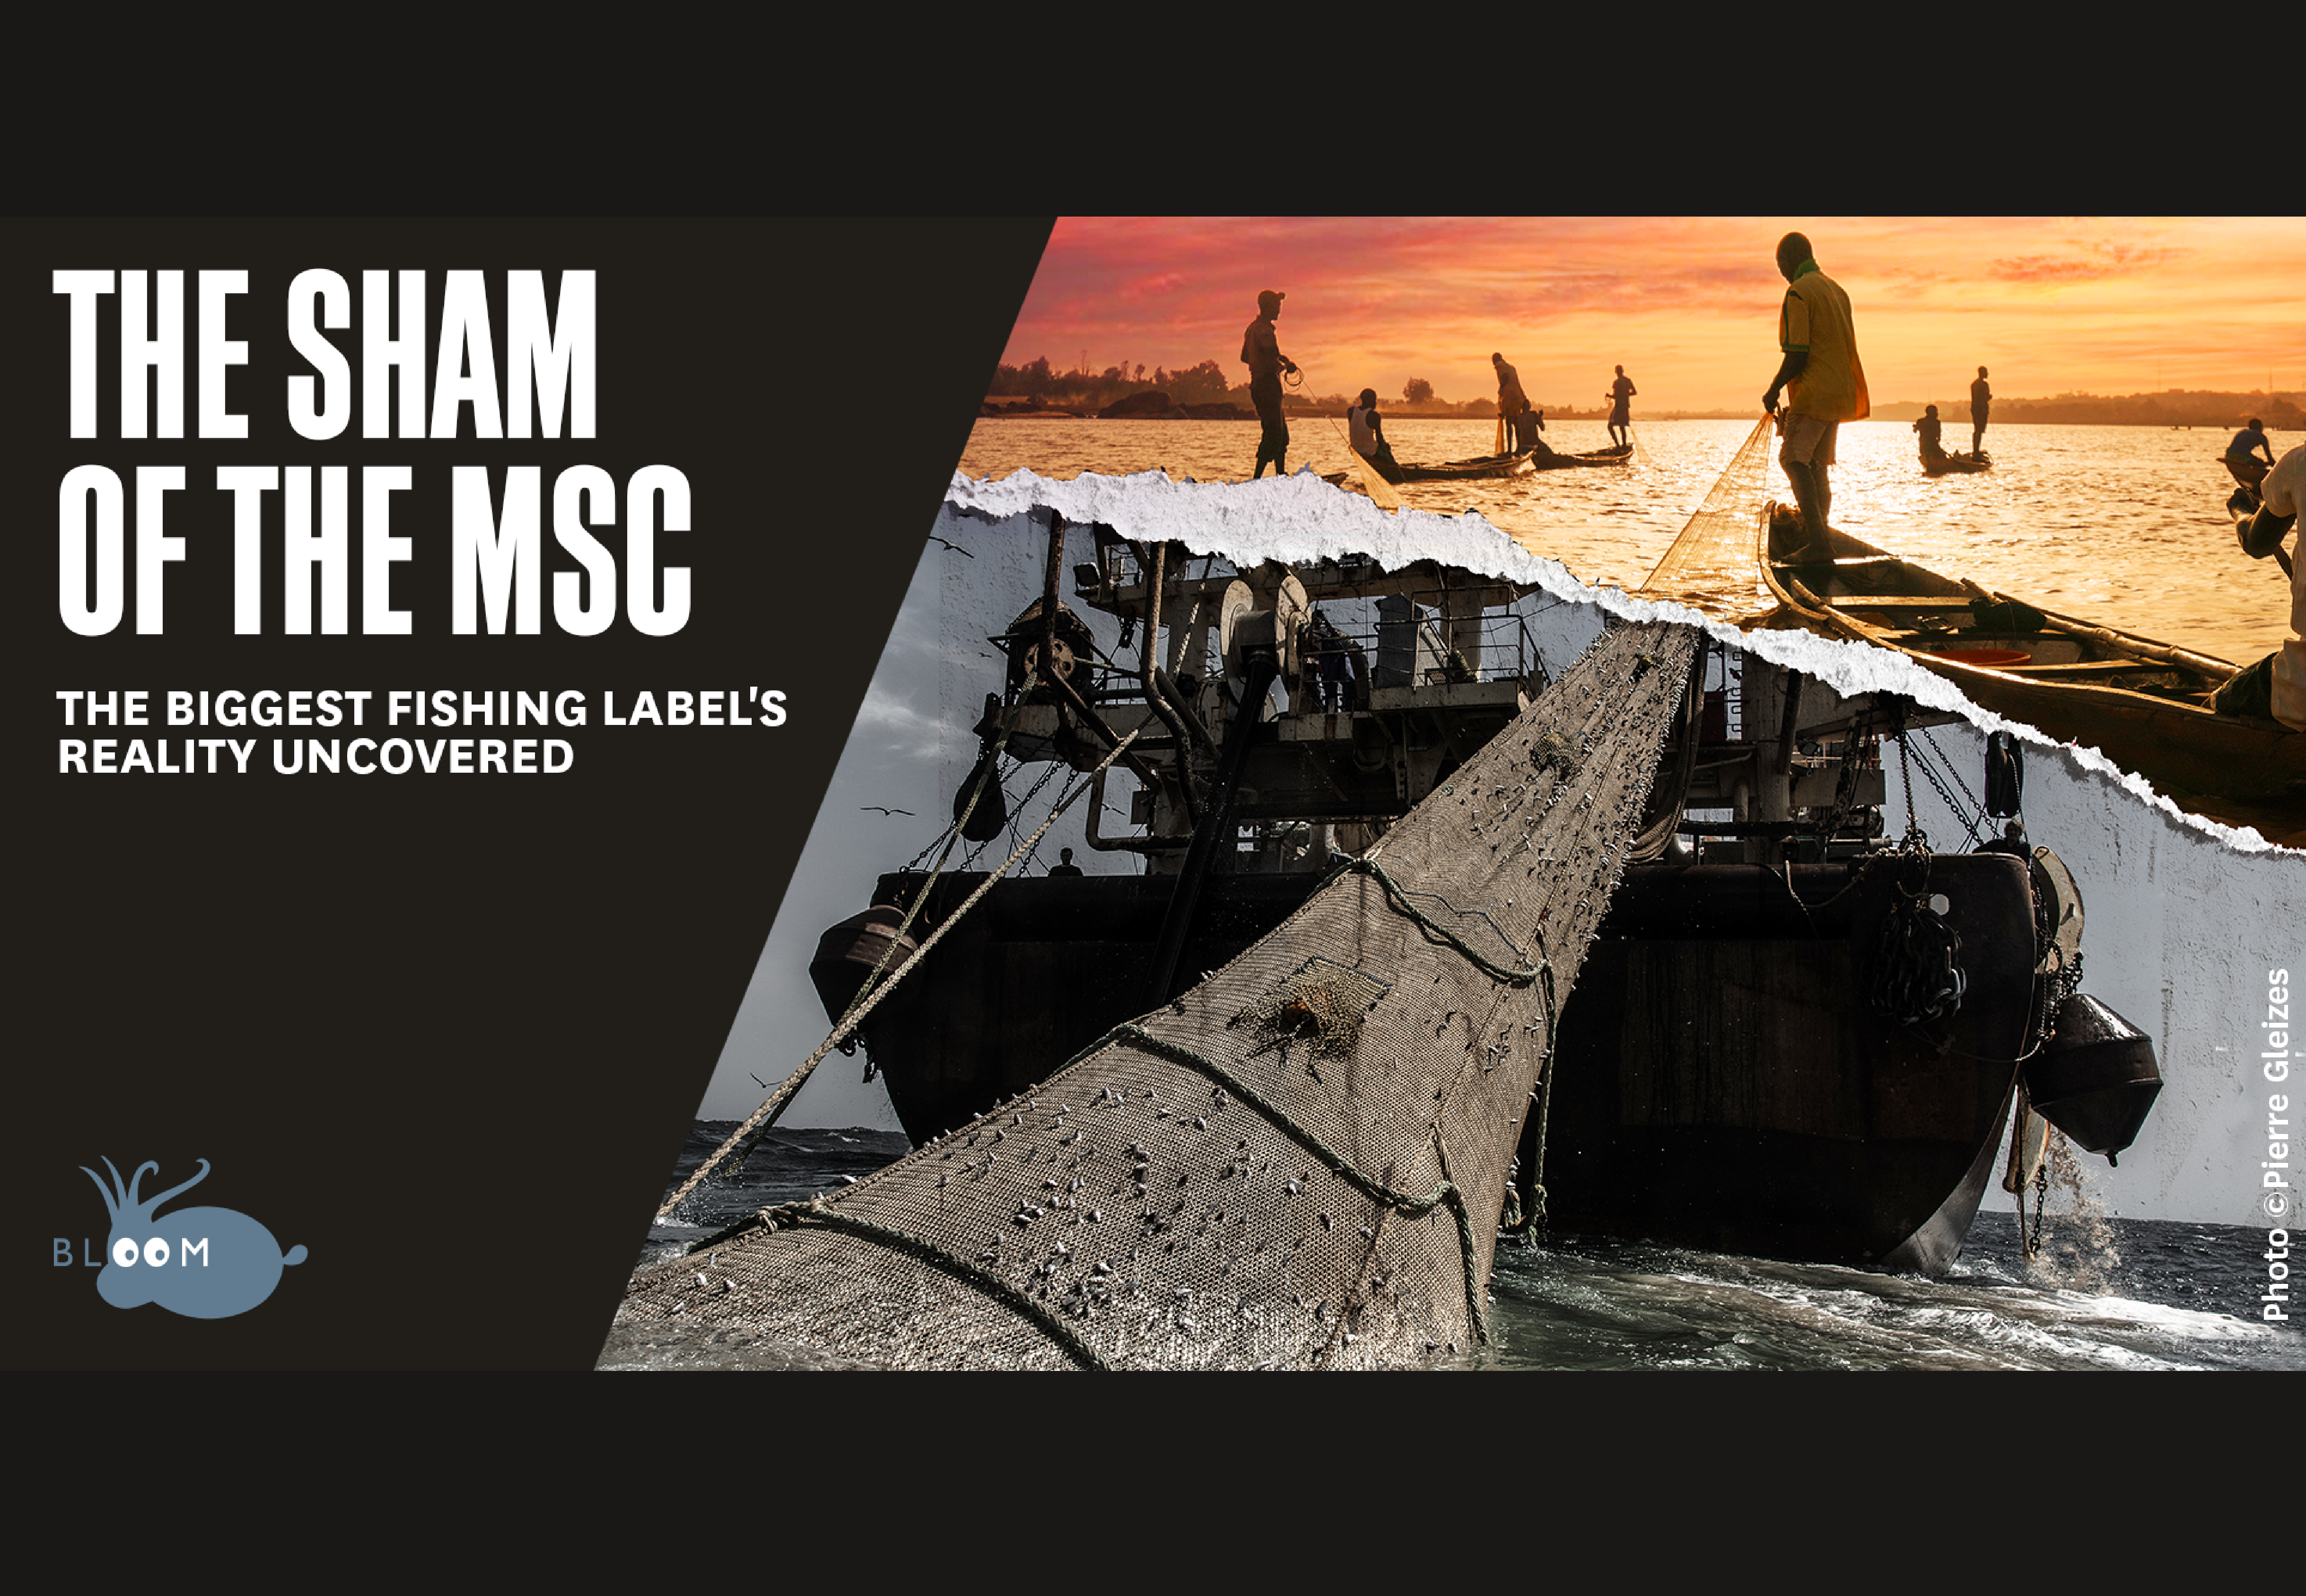 BLOOM's scientific study on the sham of the MSC label